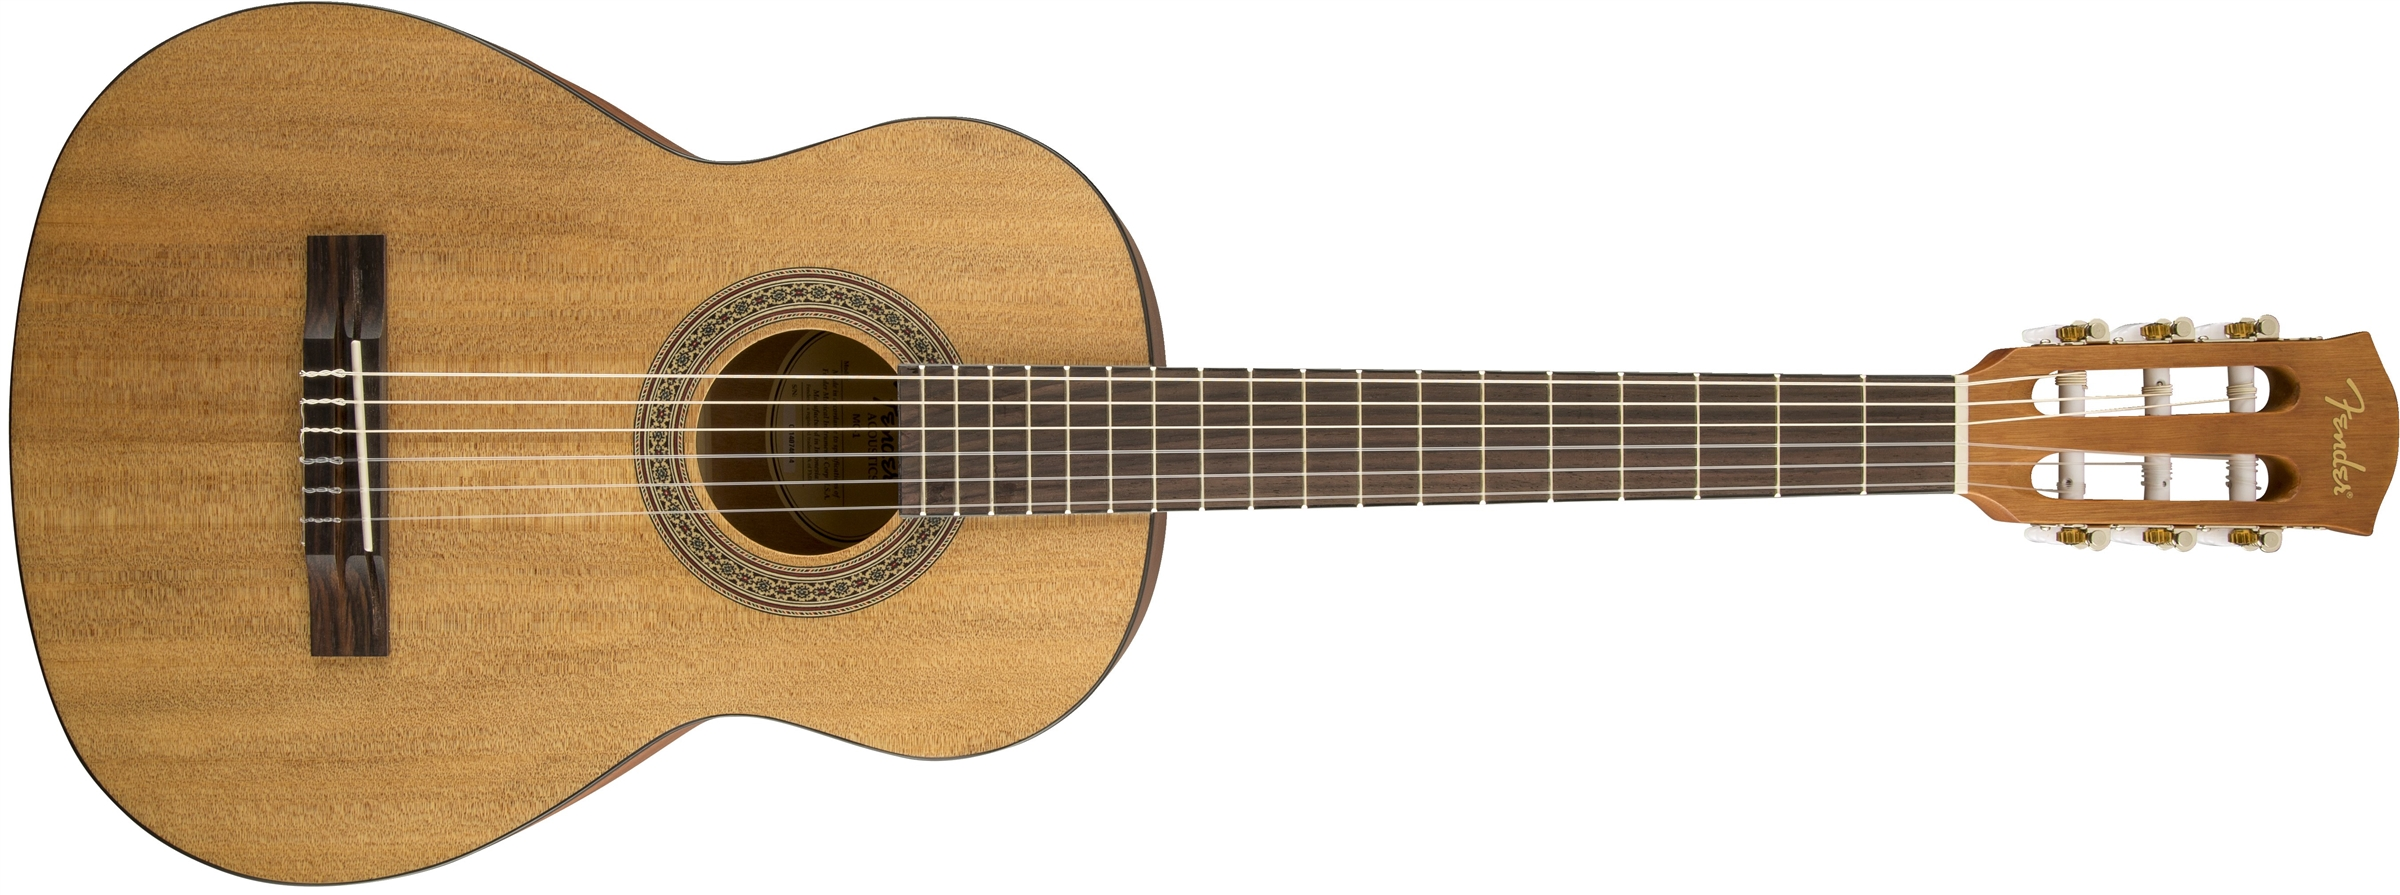 Image of Fender FA-15N Nylon 3/4 Acoustic Guitar with Gig Bag coming soon